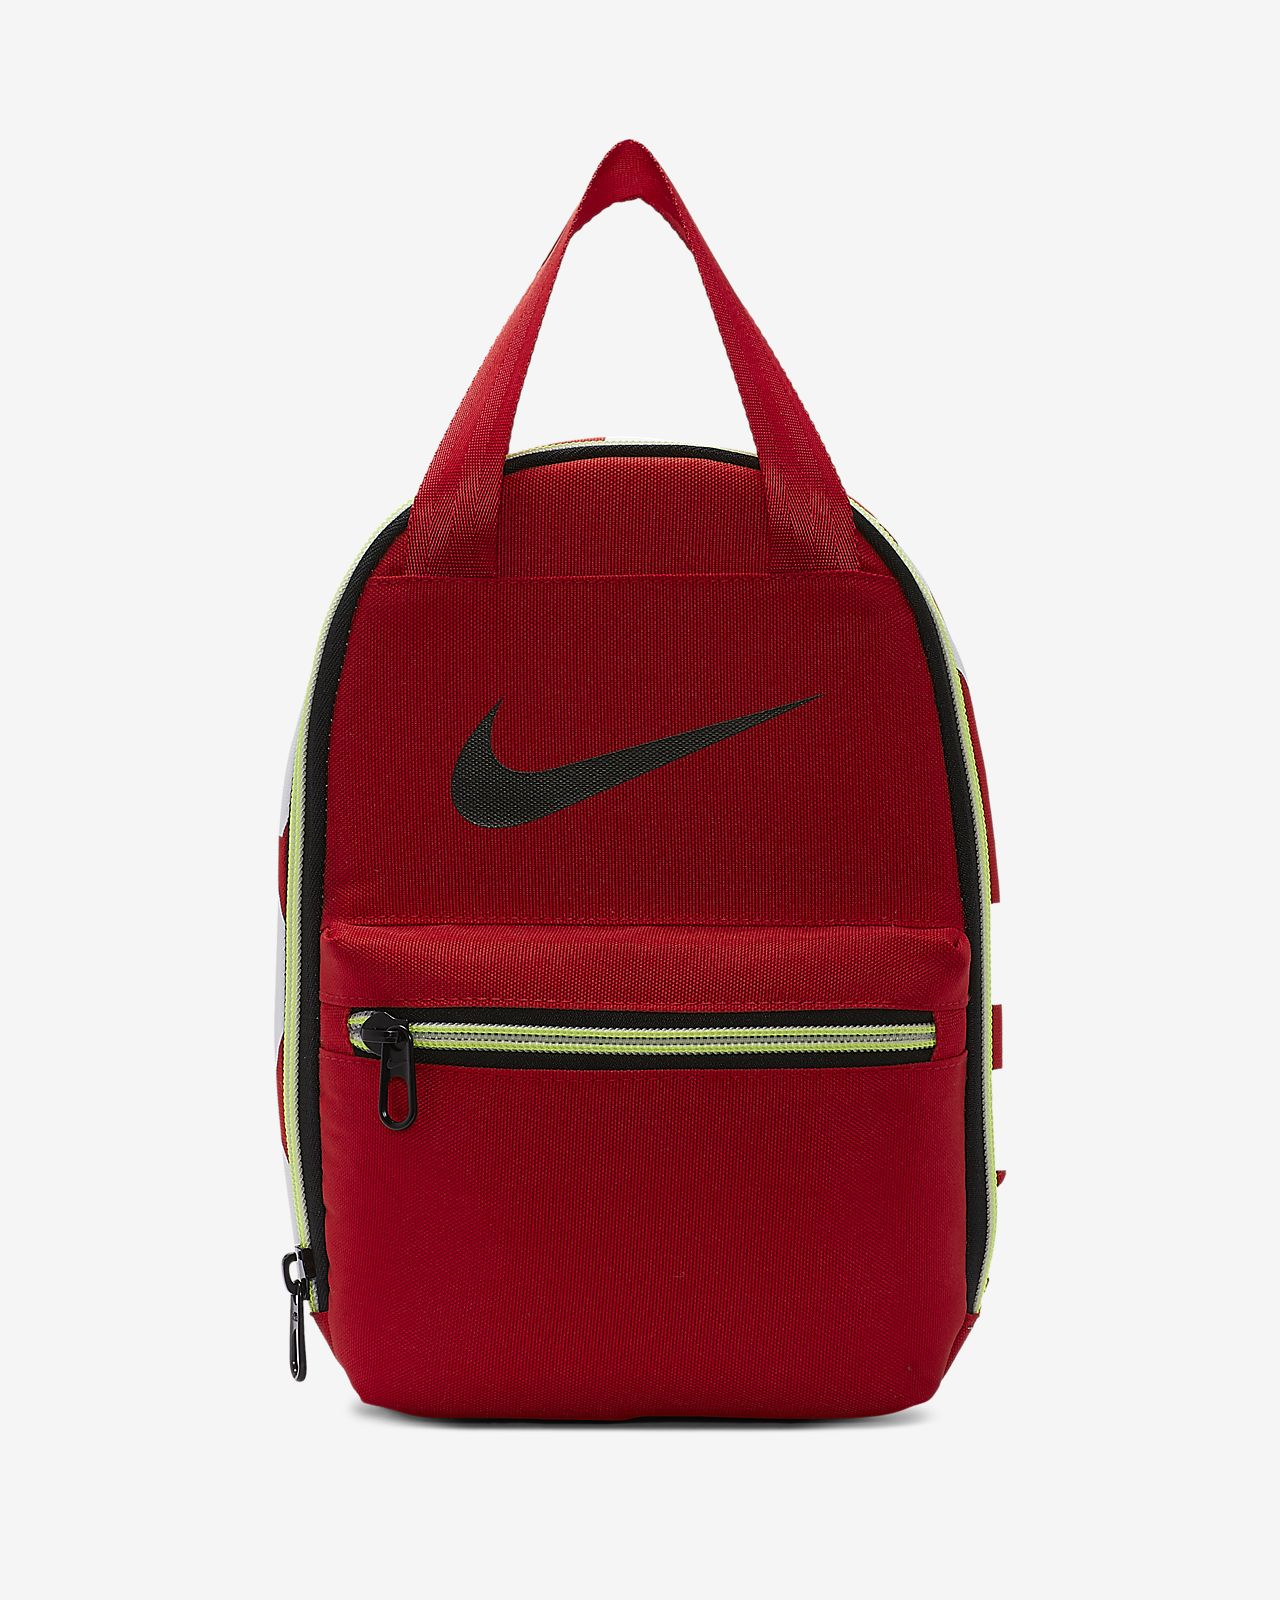 Nike Fuel Pack Lunch Bag